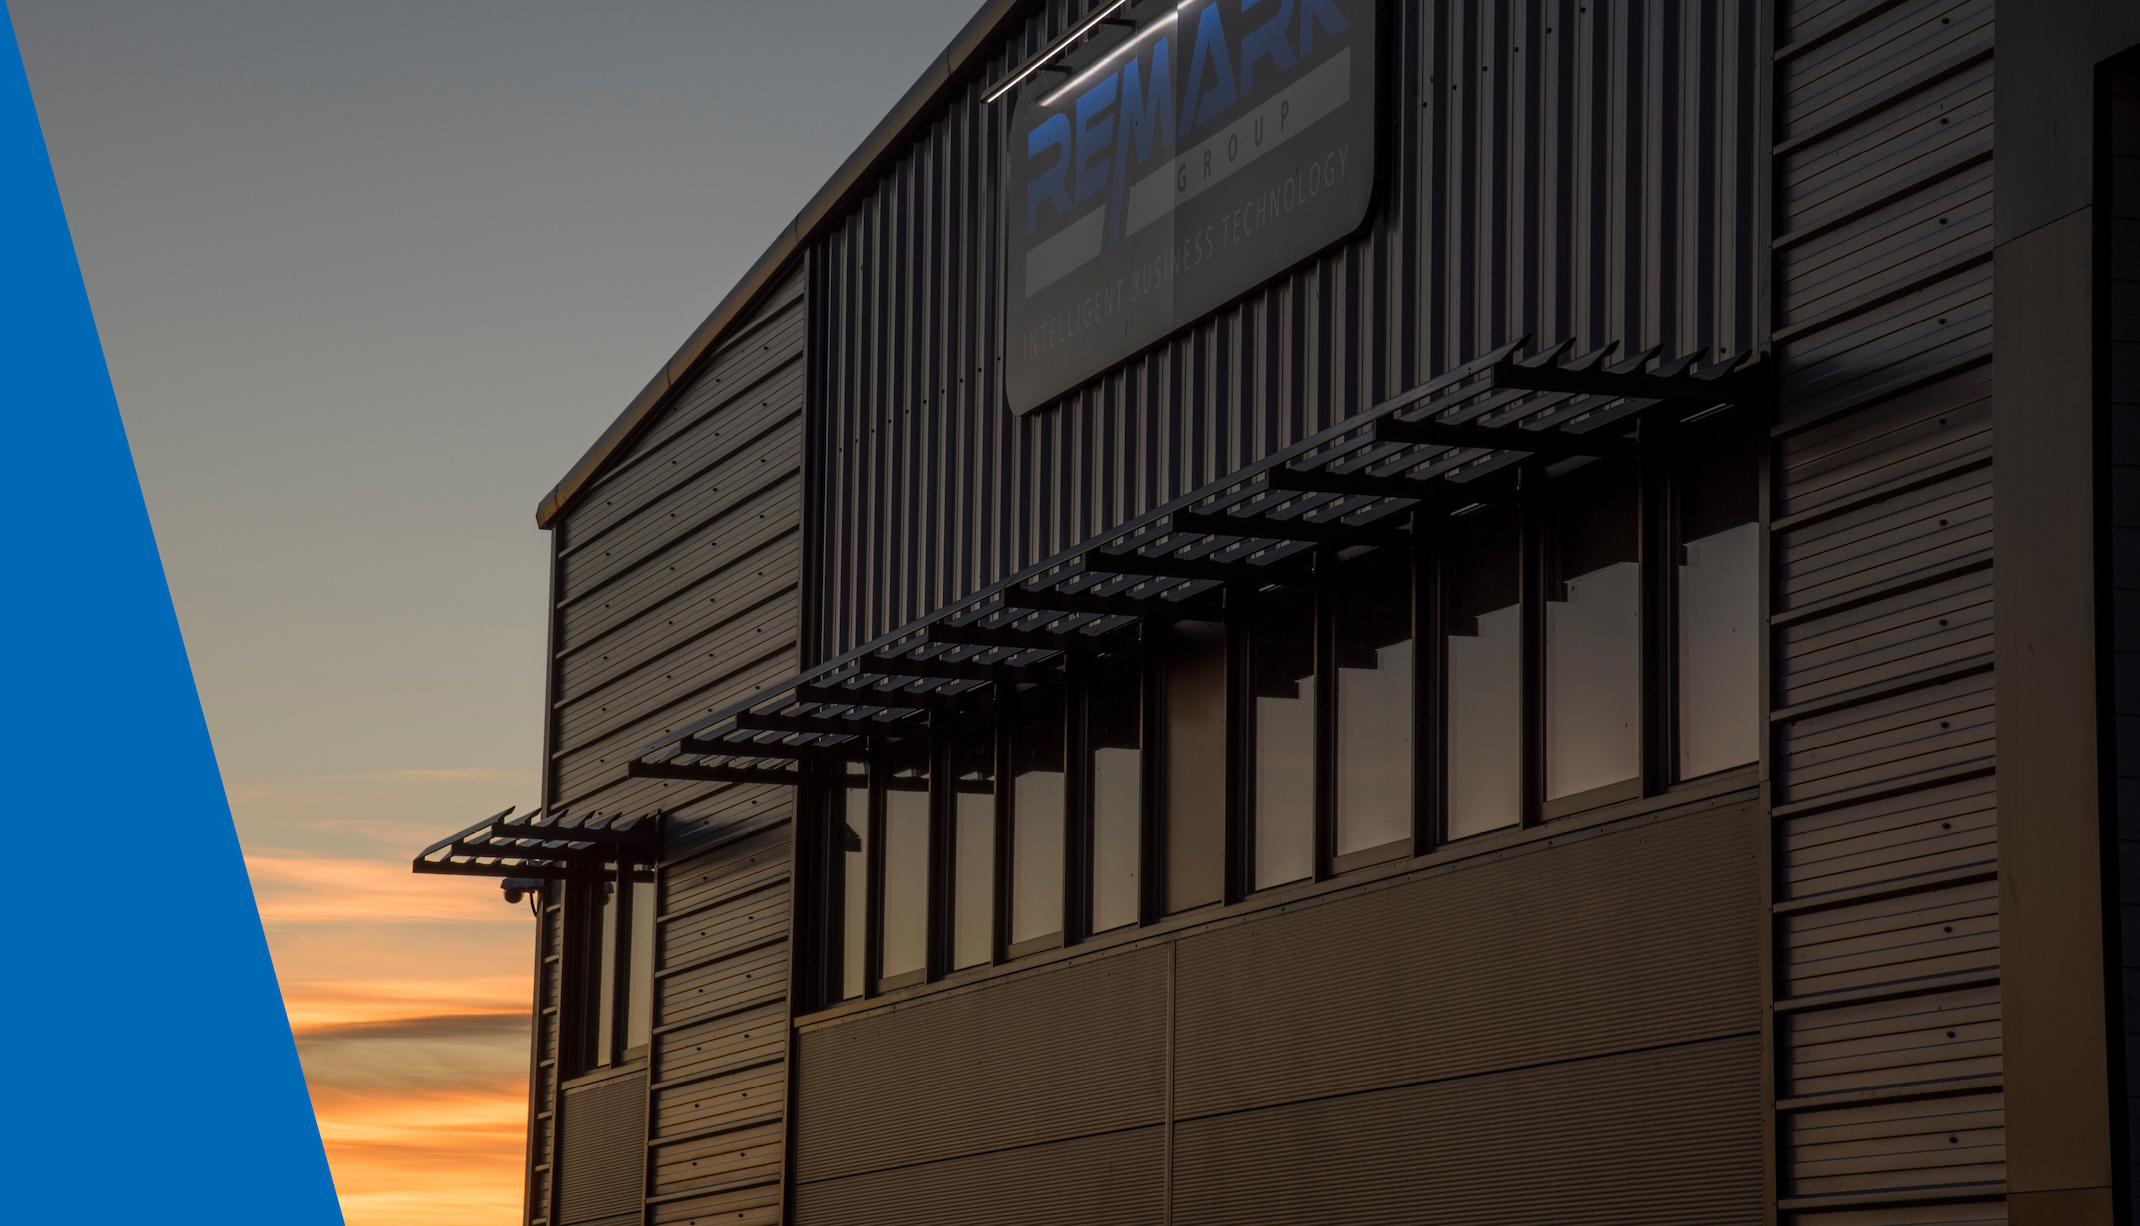 Remark Group Building at Sunset